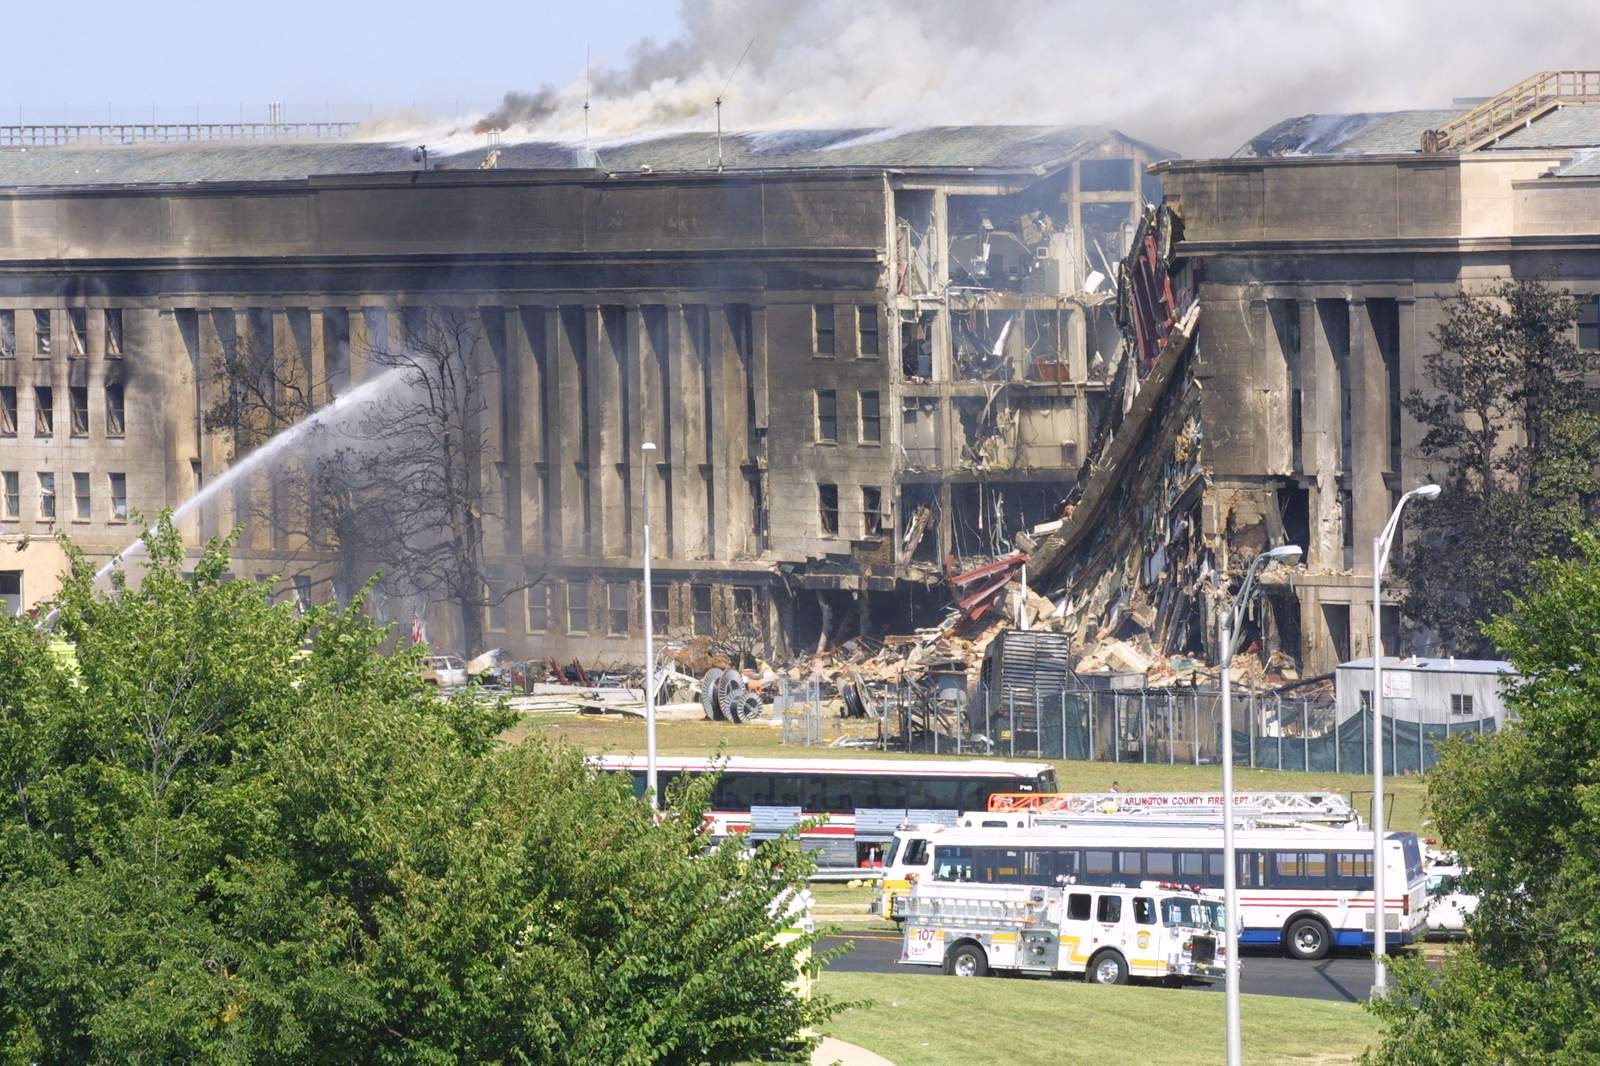 Smokecomes out from the Southwest E-ring of the Pentagon building Sept. 11, 2001 in Arlington, Va., after a plane crashed into the building and set off a huge explosion.